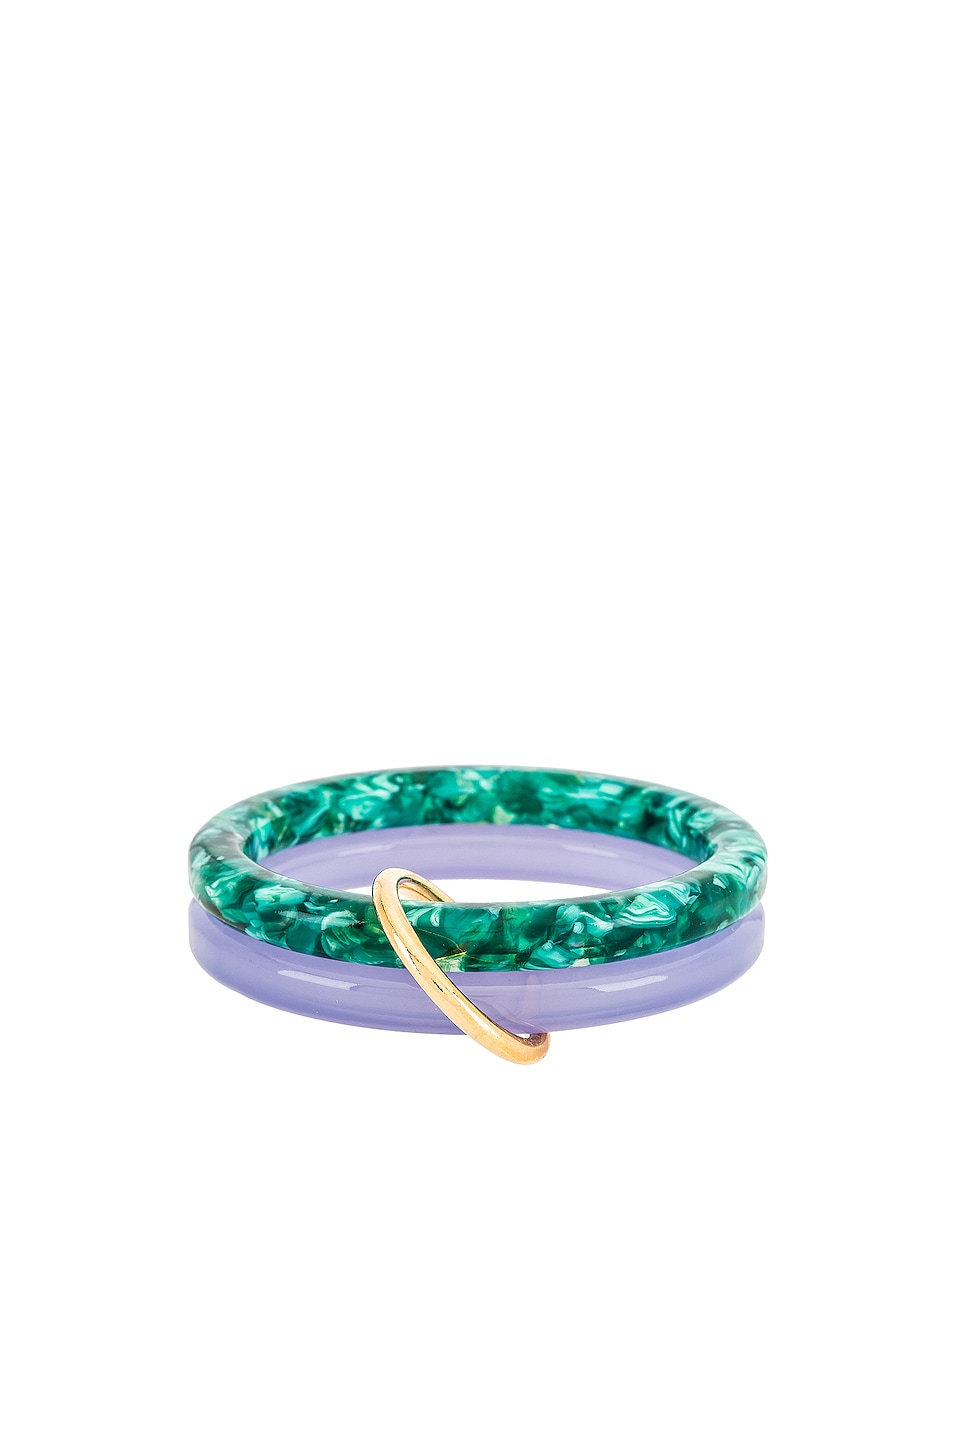 Lele Sadoughi Bangle Set in Periwinkle